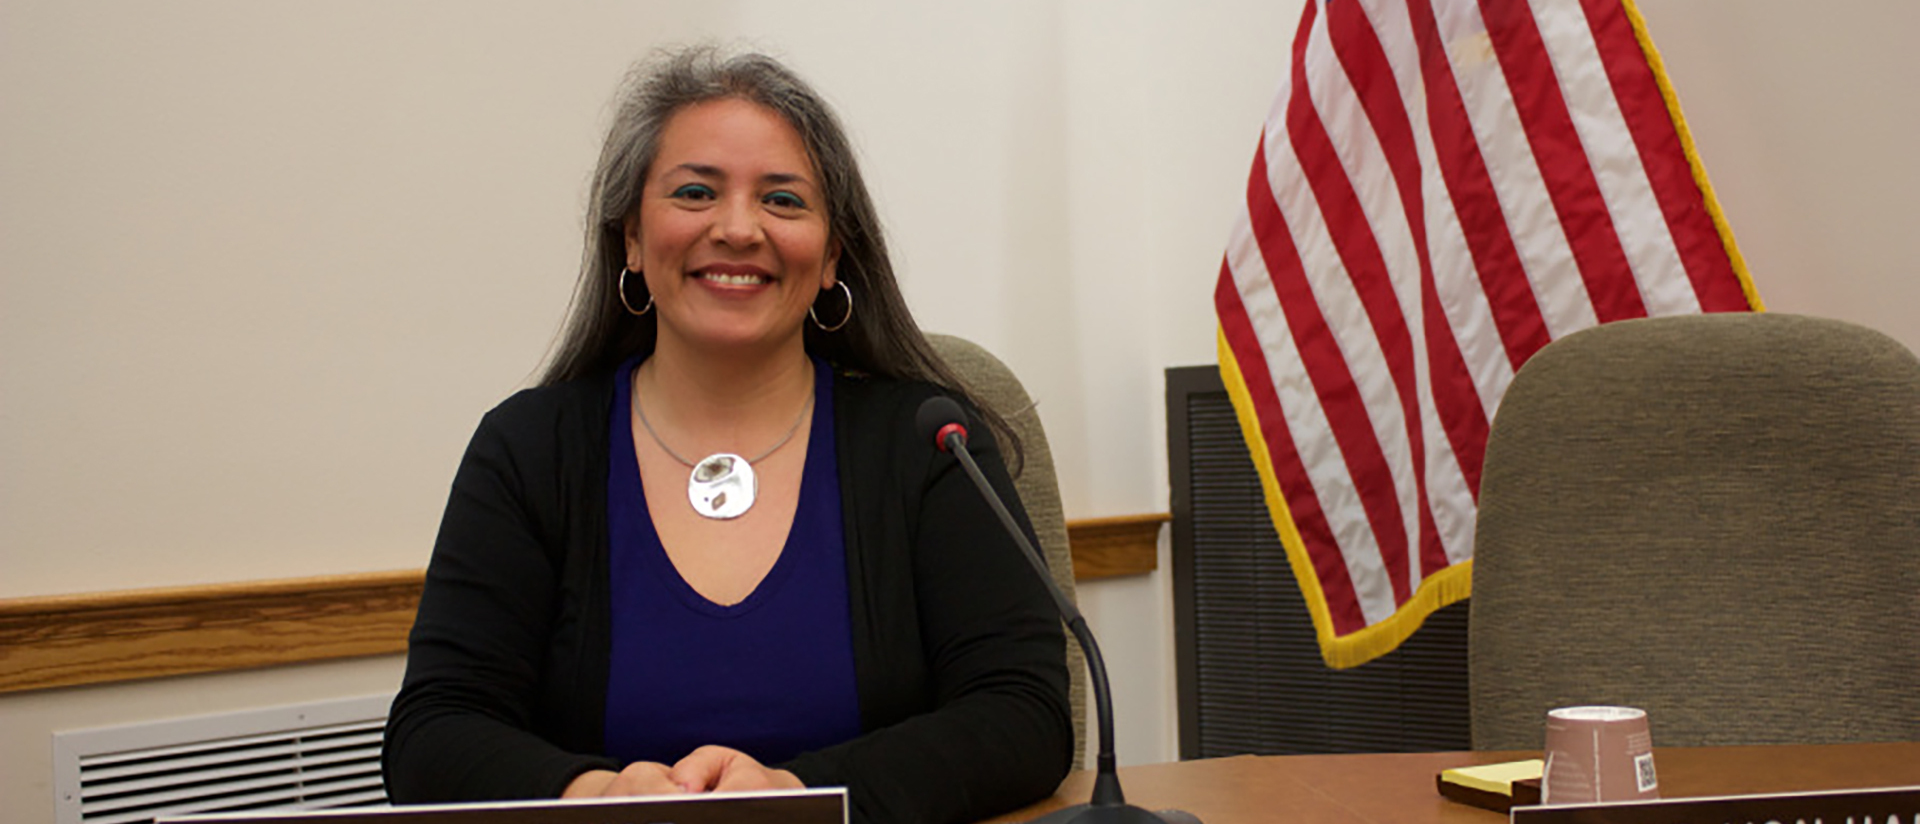 Catherine Emmanuelle, Eau Claire city council